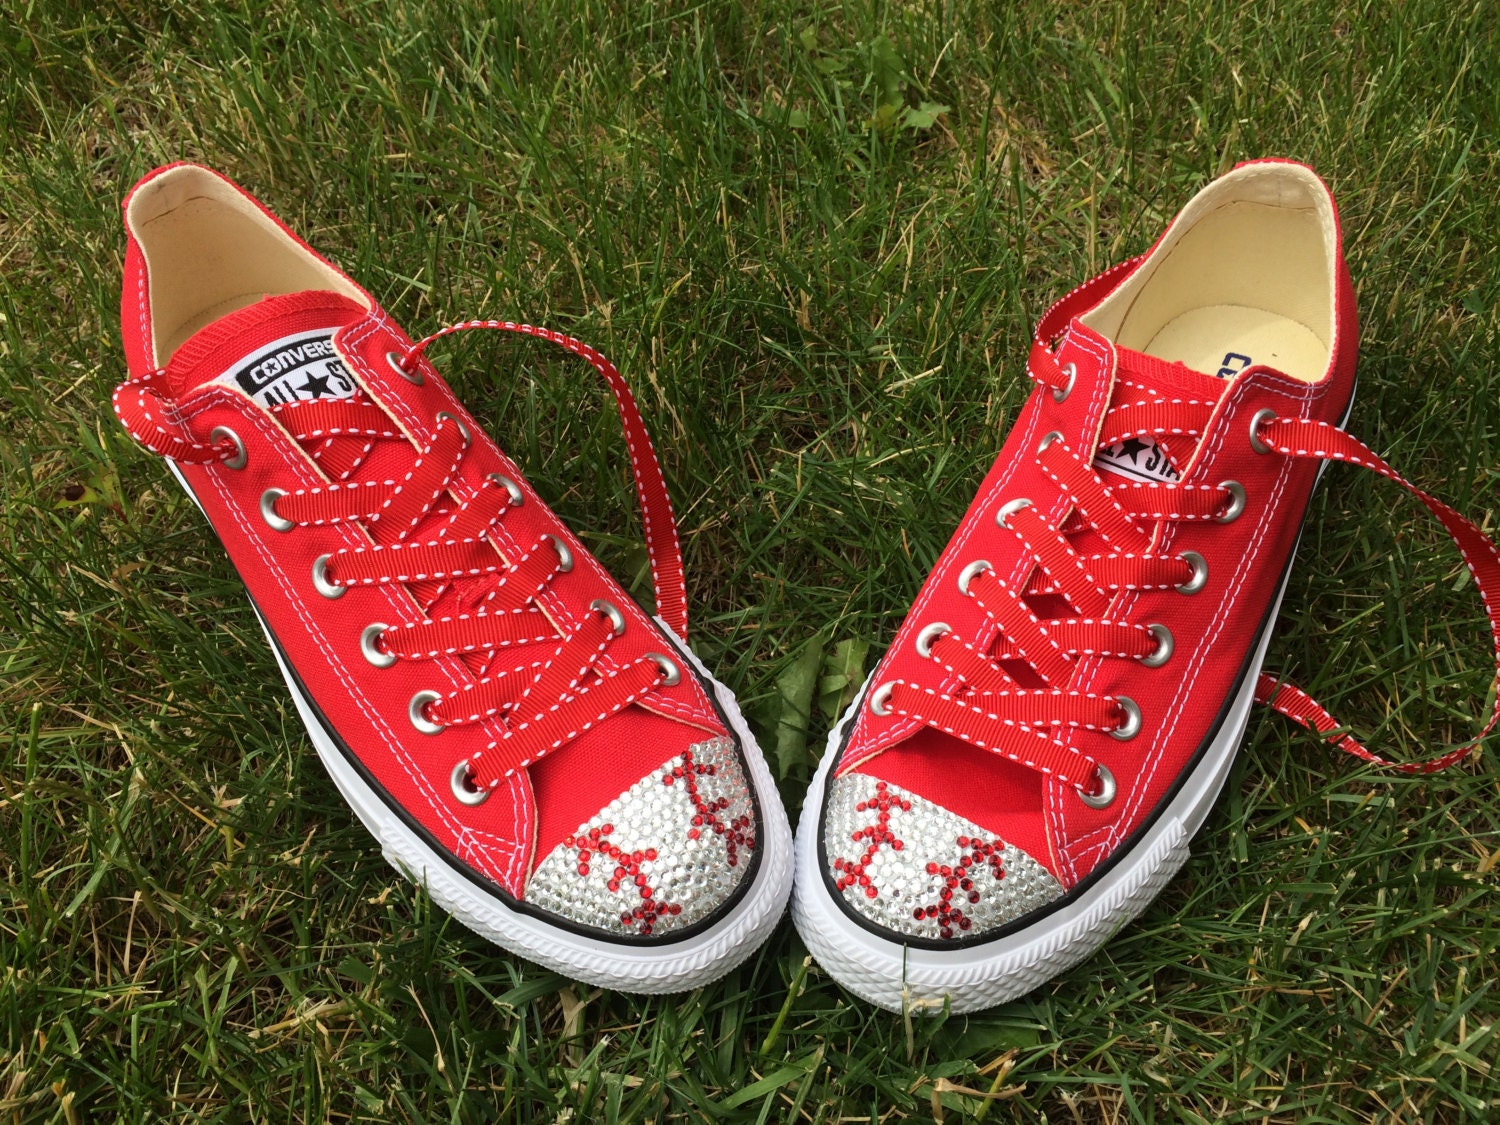 Red Baseball Converse Blinged Shoes. Women's Baseball Custom Converse. Personalized Gift: Baseball Women's Mom, Baseball Player, Baseball Fans. Gift for her daff3f